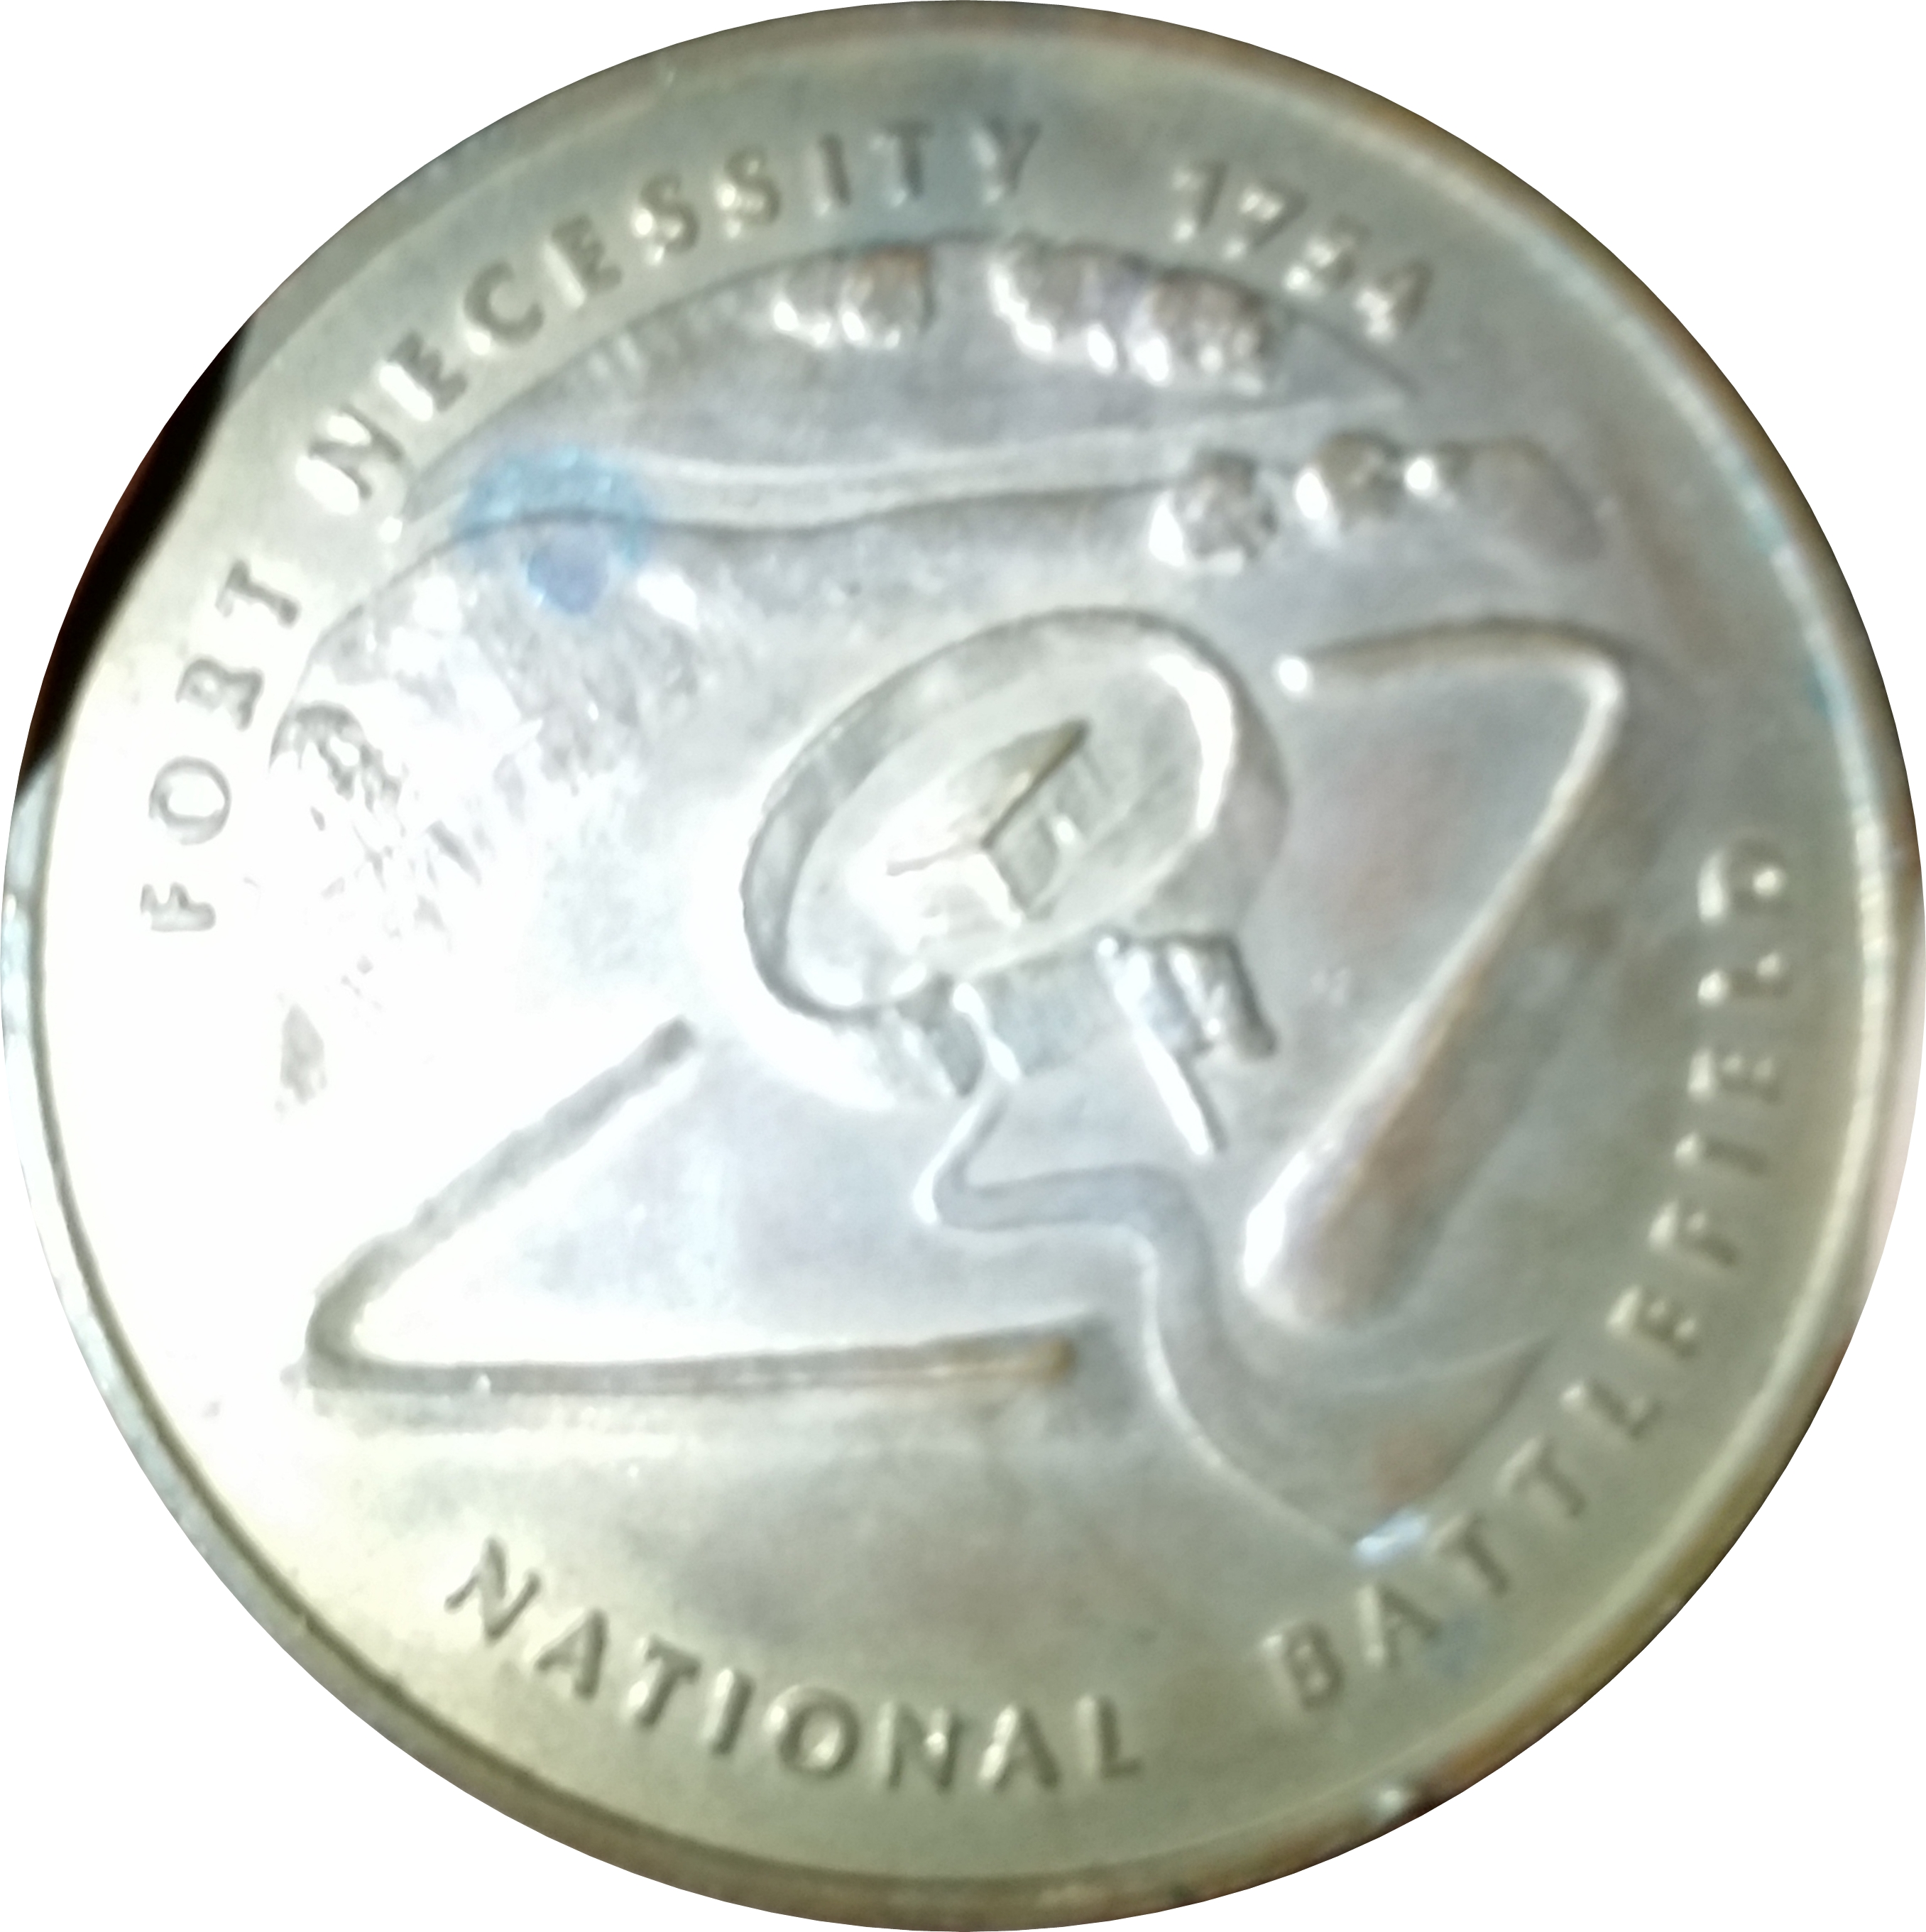 silver gemini number nasa apollo mission crew emblem names space flown coin serial dates medallion medallions wikipedia robbins wiki front and flight